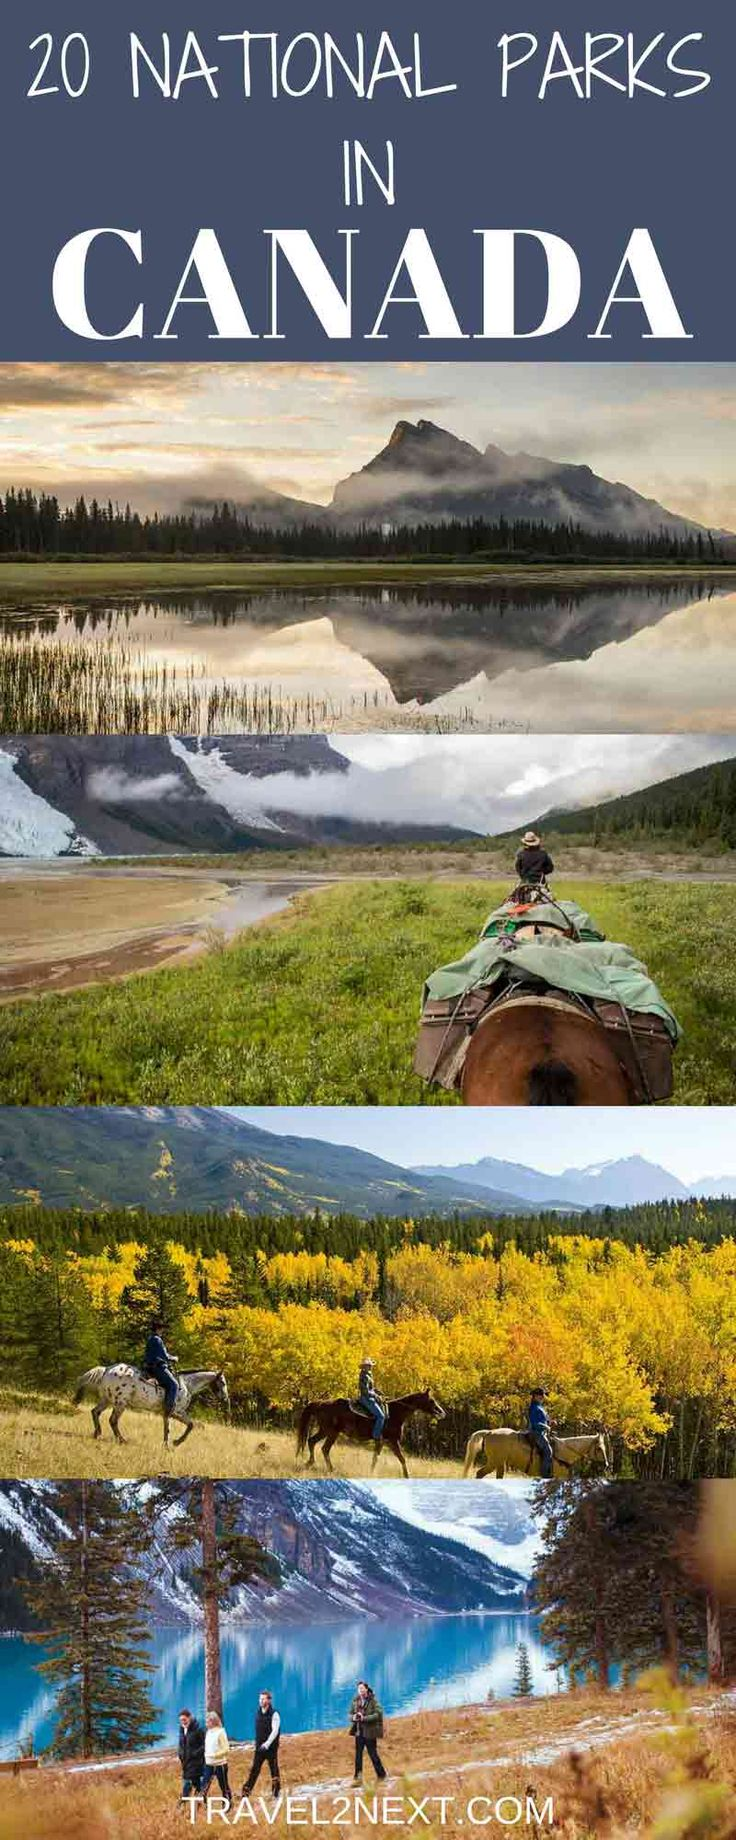 National Parks In Canada